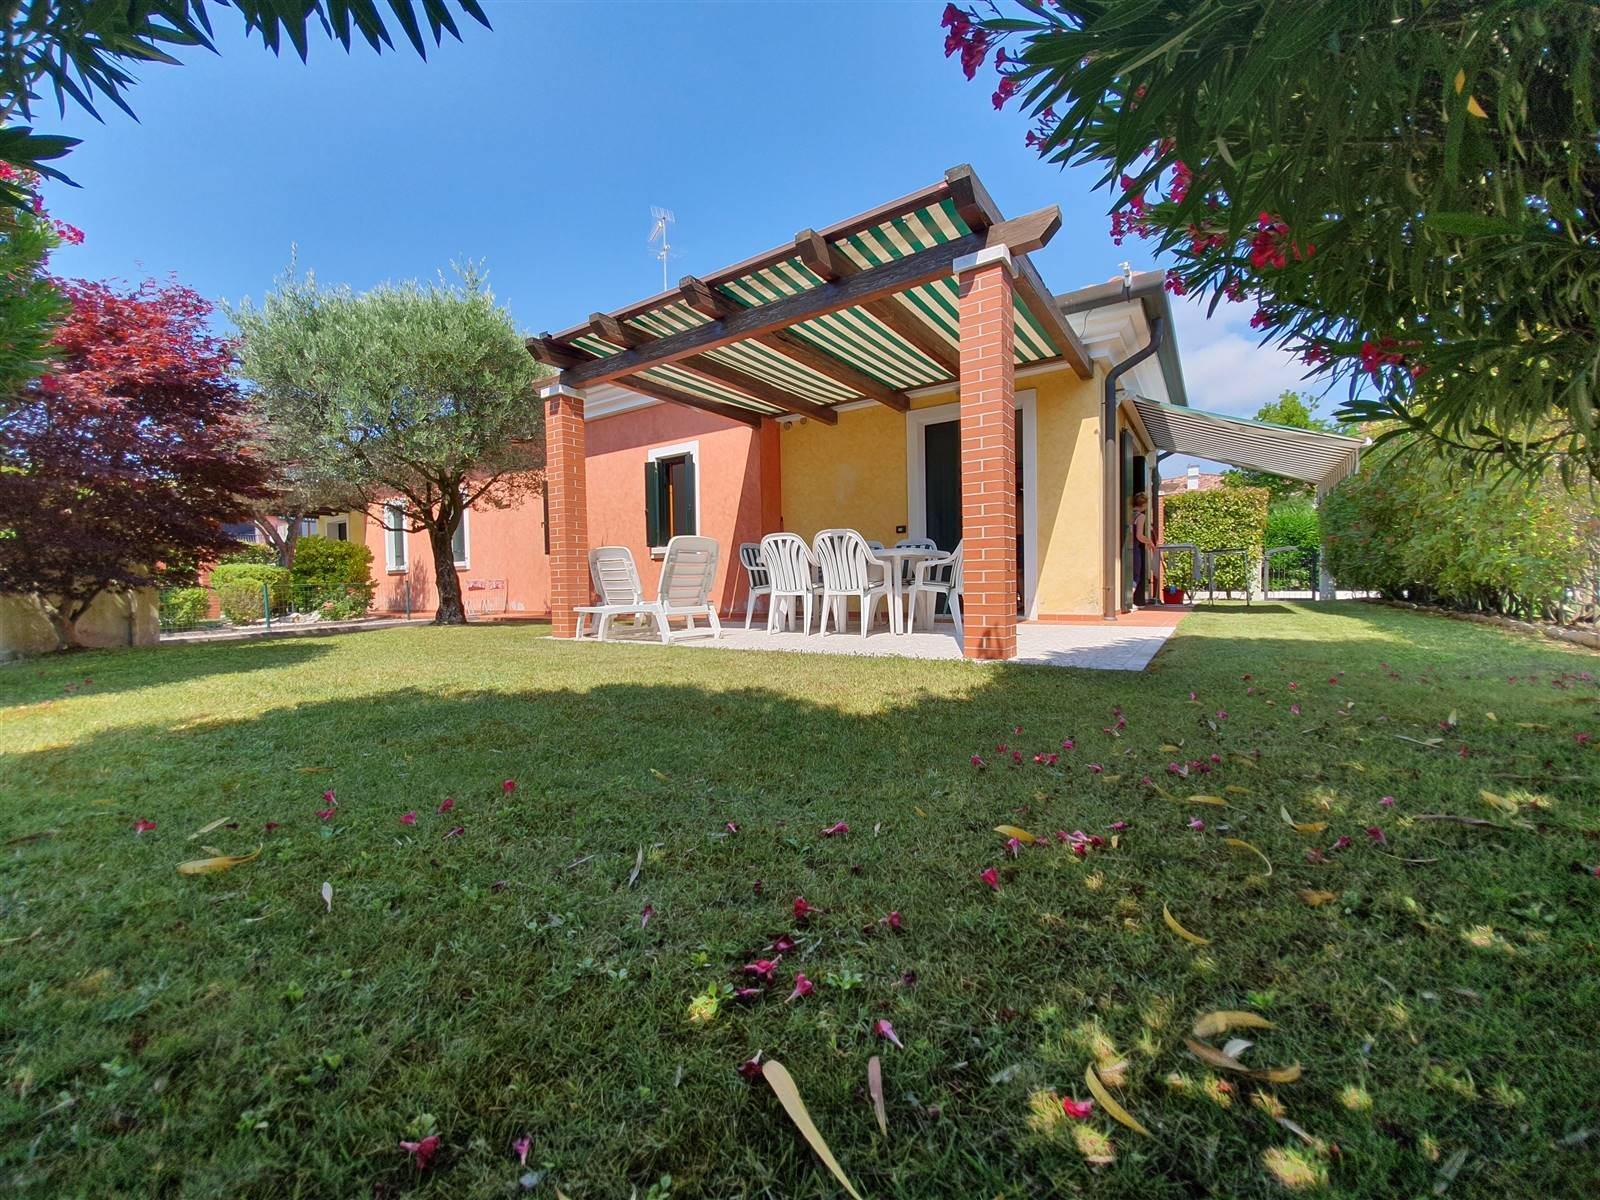 CAVALLINO TREPORTI, Apartment for sale of 120 Sq. mt., Excellent Condition, Heating Individual heating system, Energetic class: C, Epi: 0 kwh/m2 year,